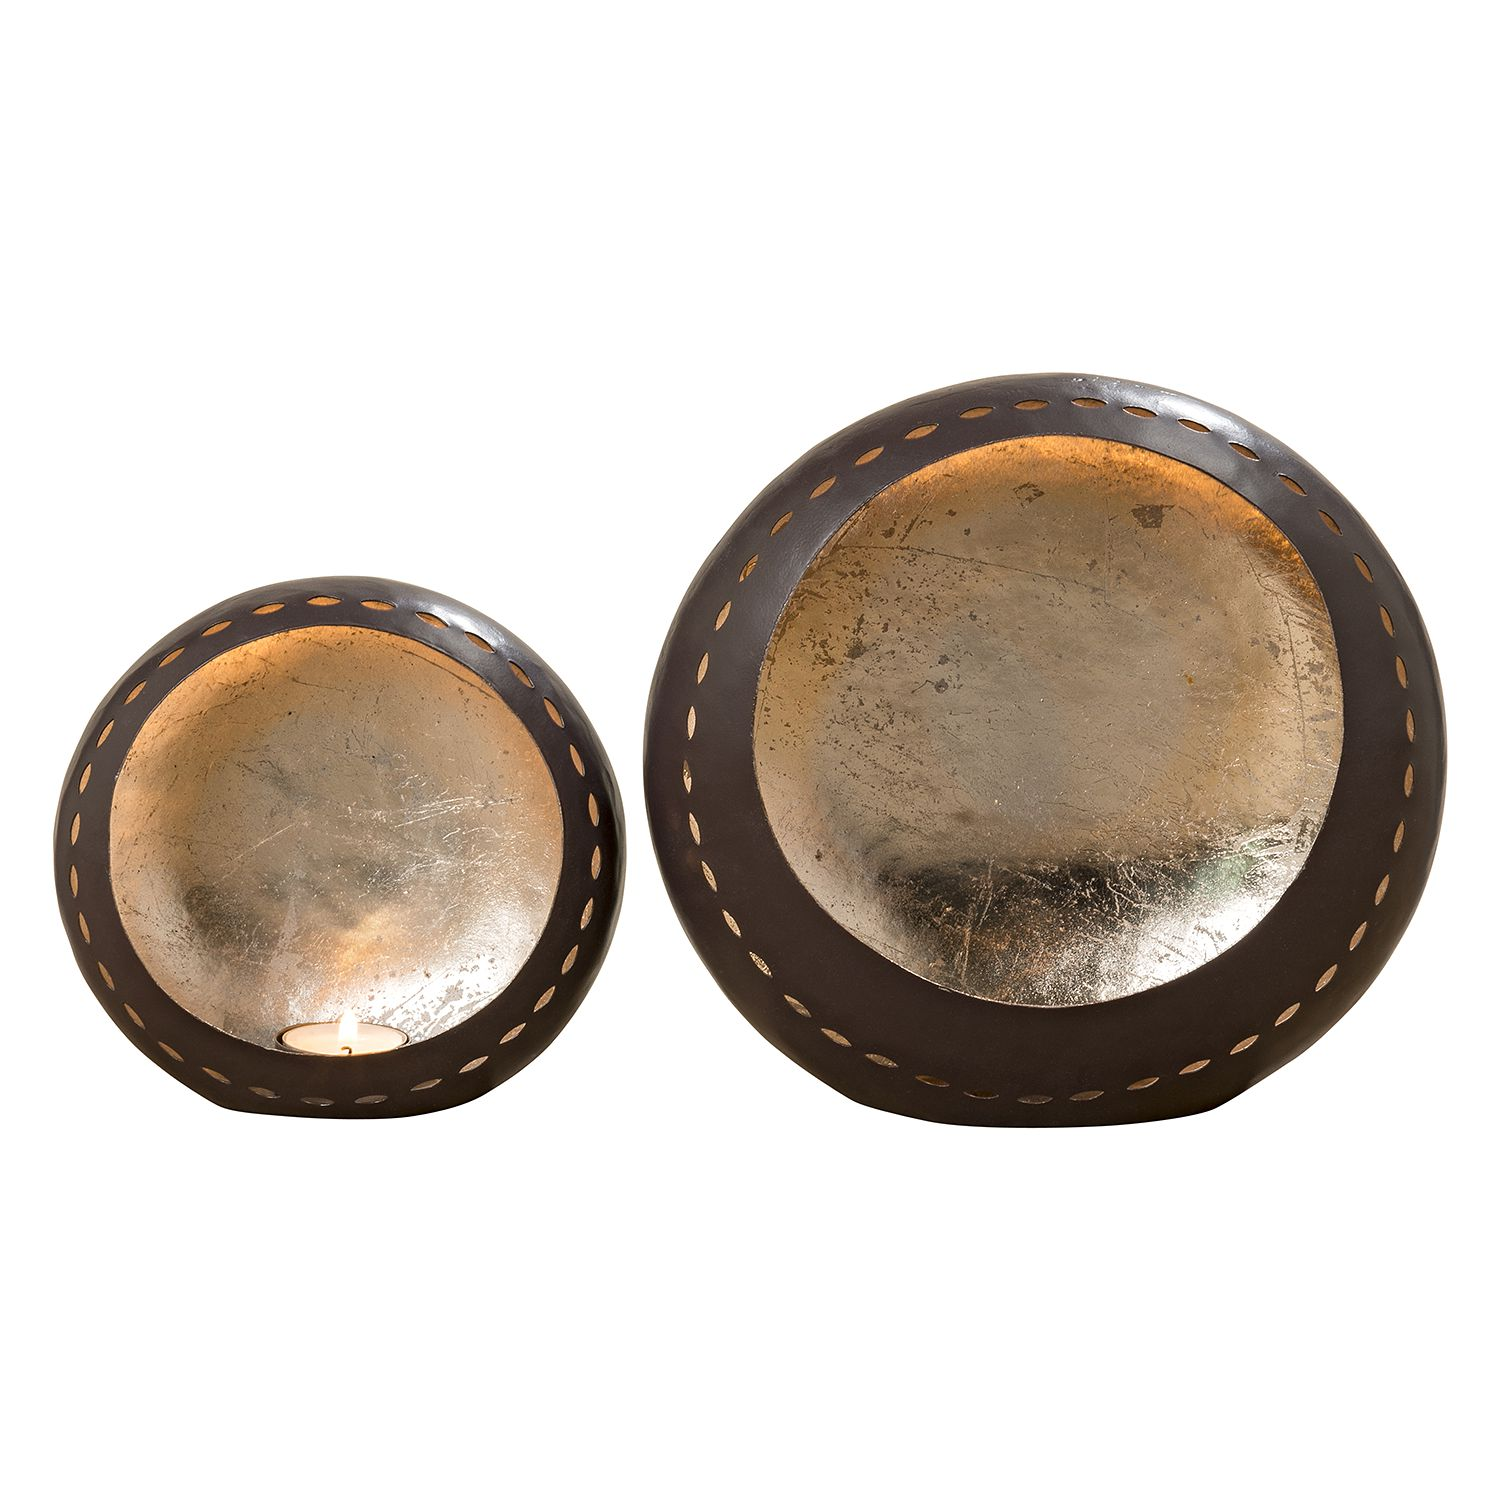 Home 24 - Photophore riom (lot de 2) - fer - marron / argenté, ars manufacti